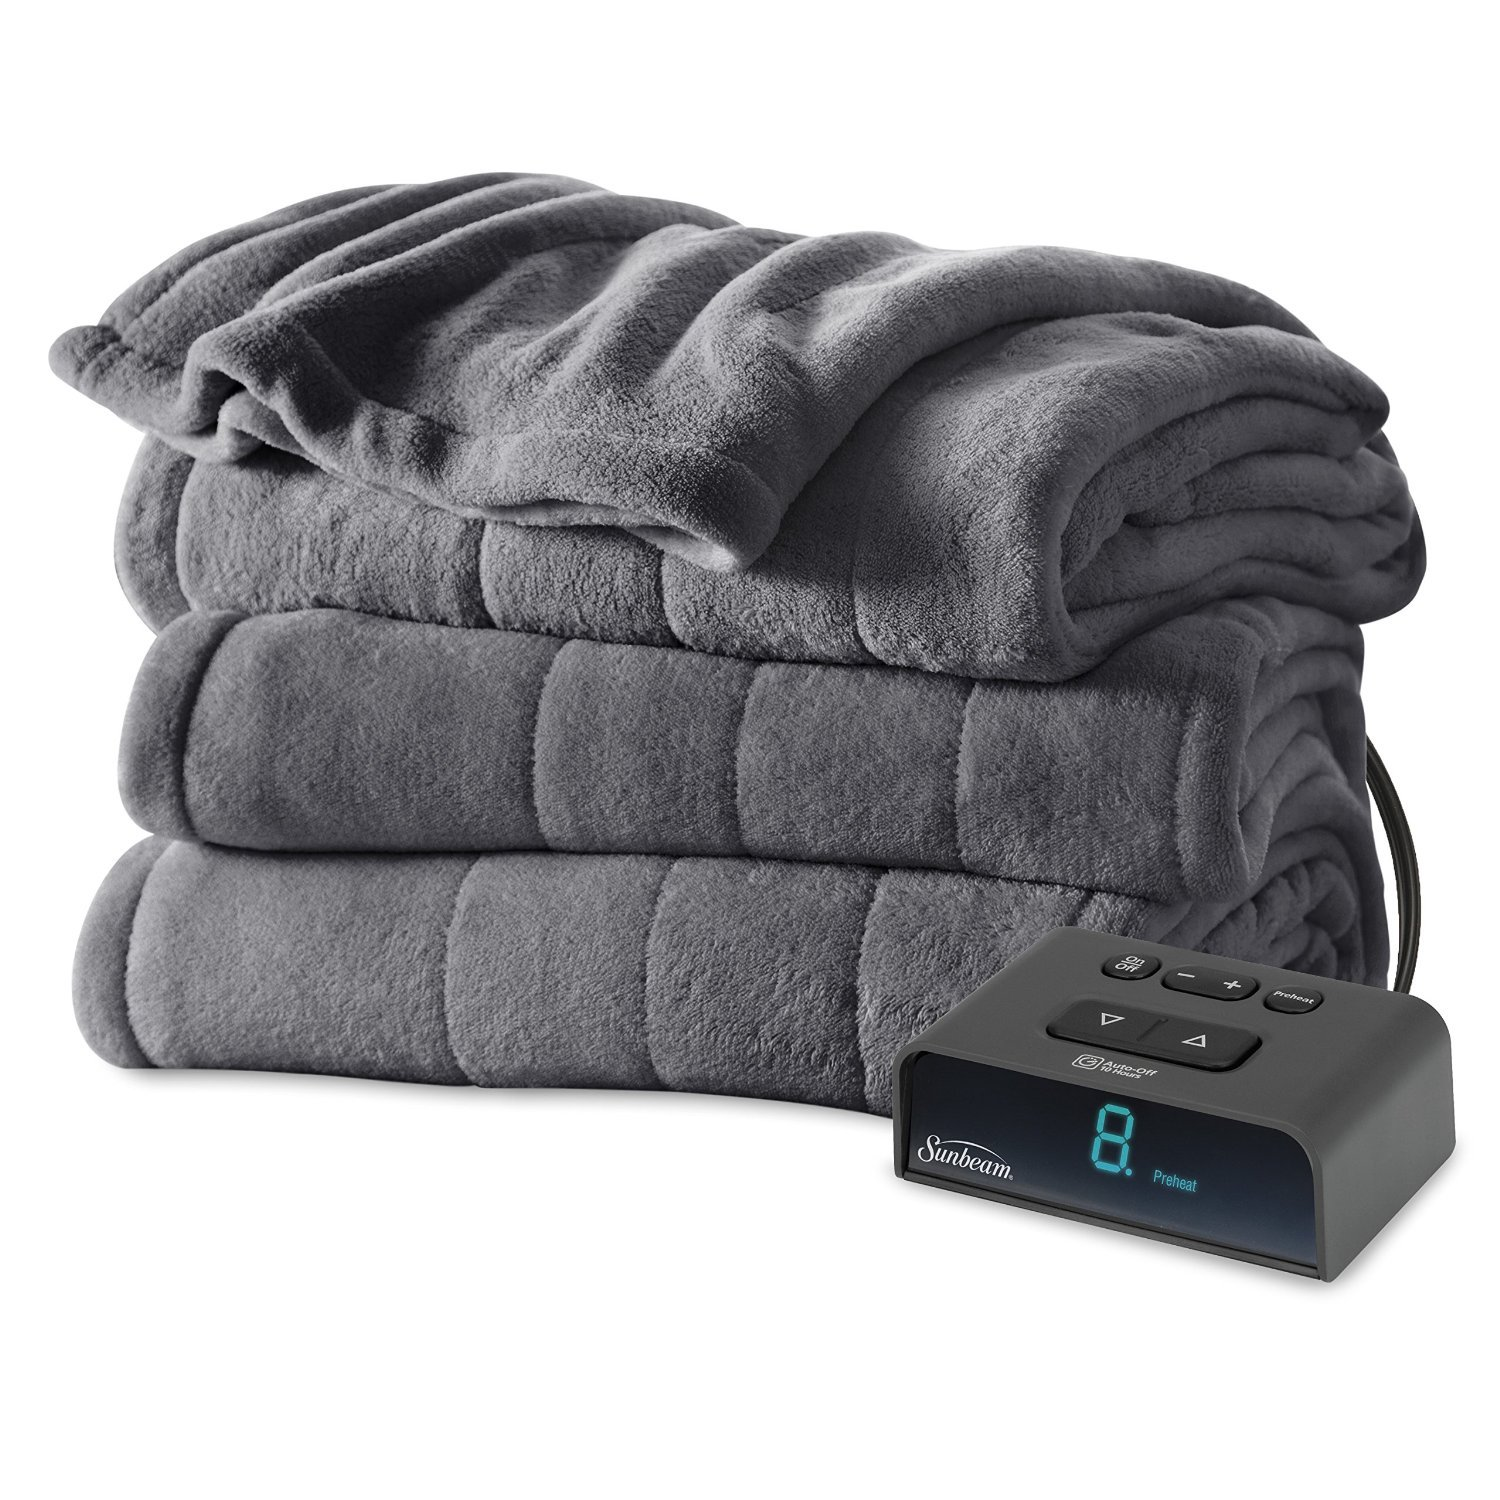 The Sunbeam Electric Blanket With 1,000 5-Star Reviews Helps Me Fall Asleep Instantly The Sunbeam Electric Blanket With 1,000 5-Star Reviews Helps Me Fall Asleep Instantly new picture